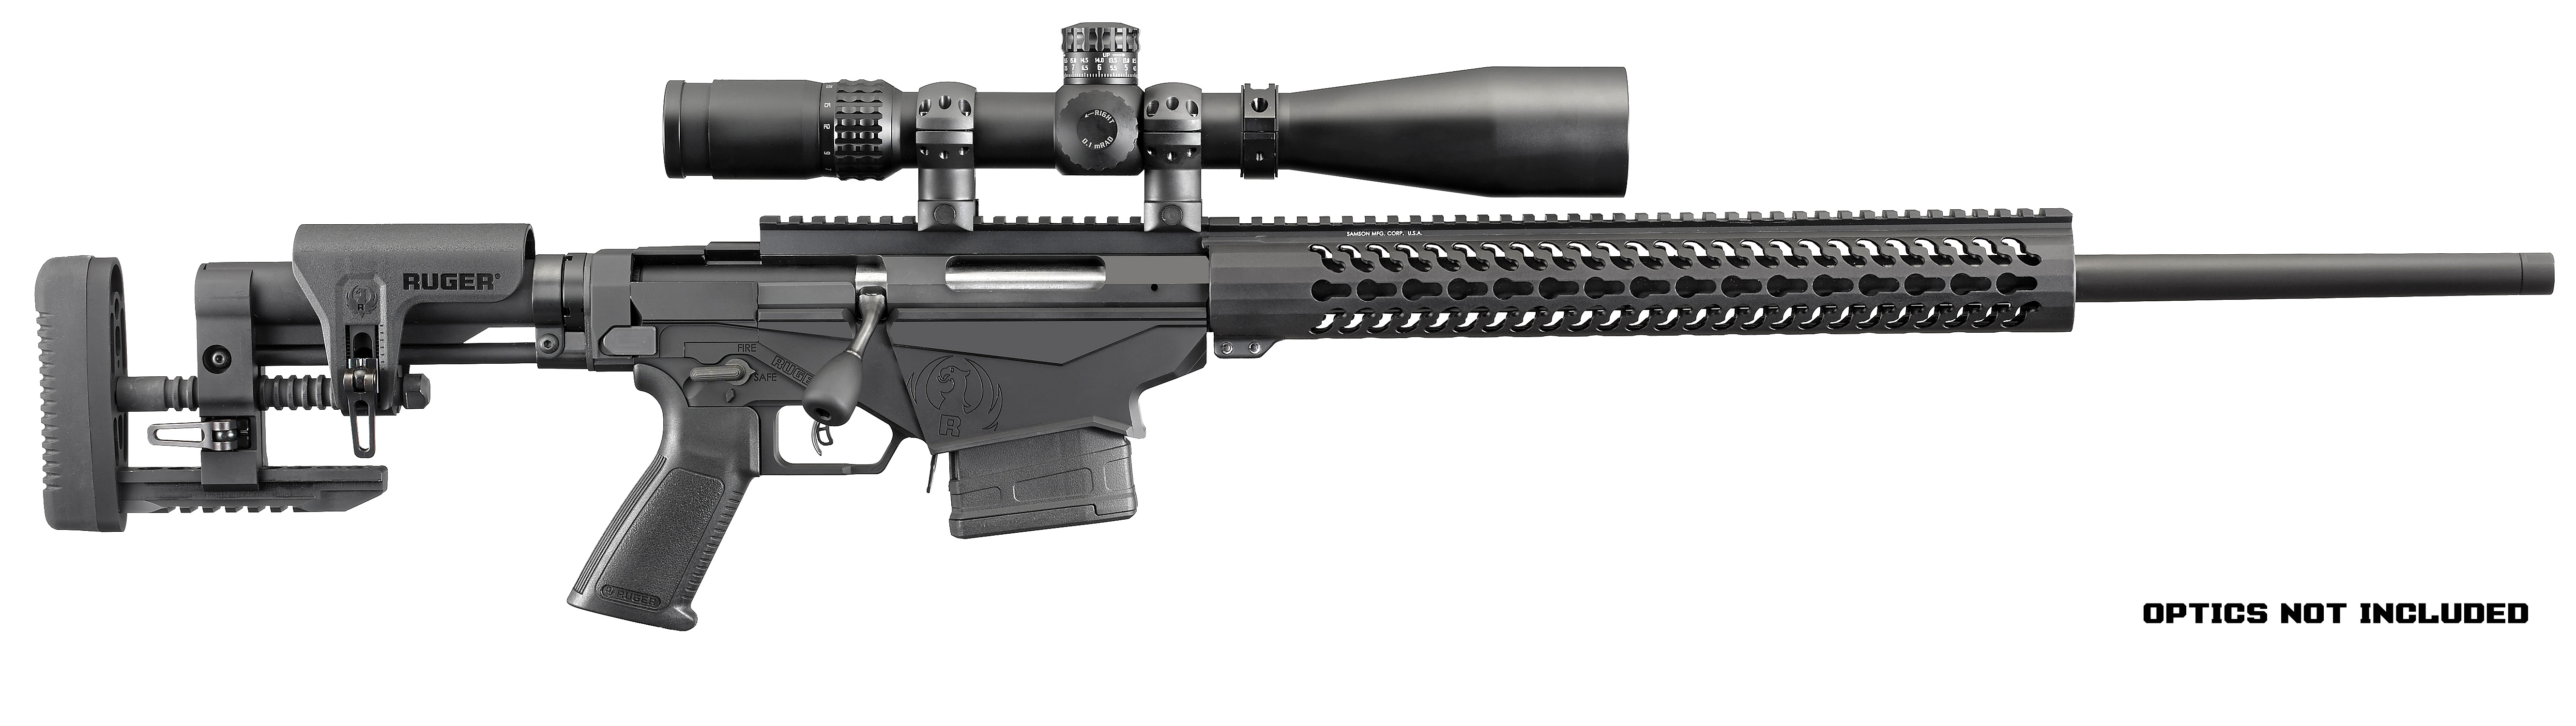 Ruger Precision Rifle - 6.5 Creedmoor